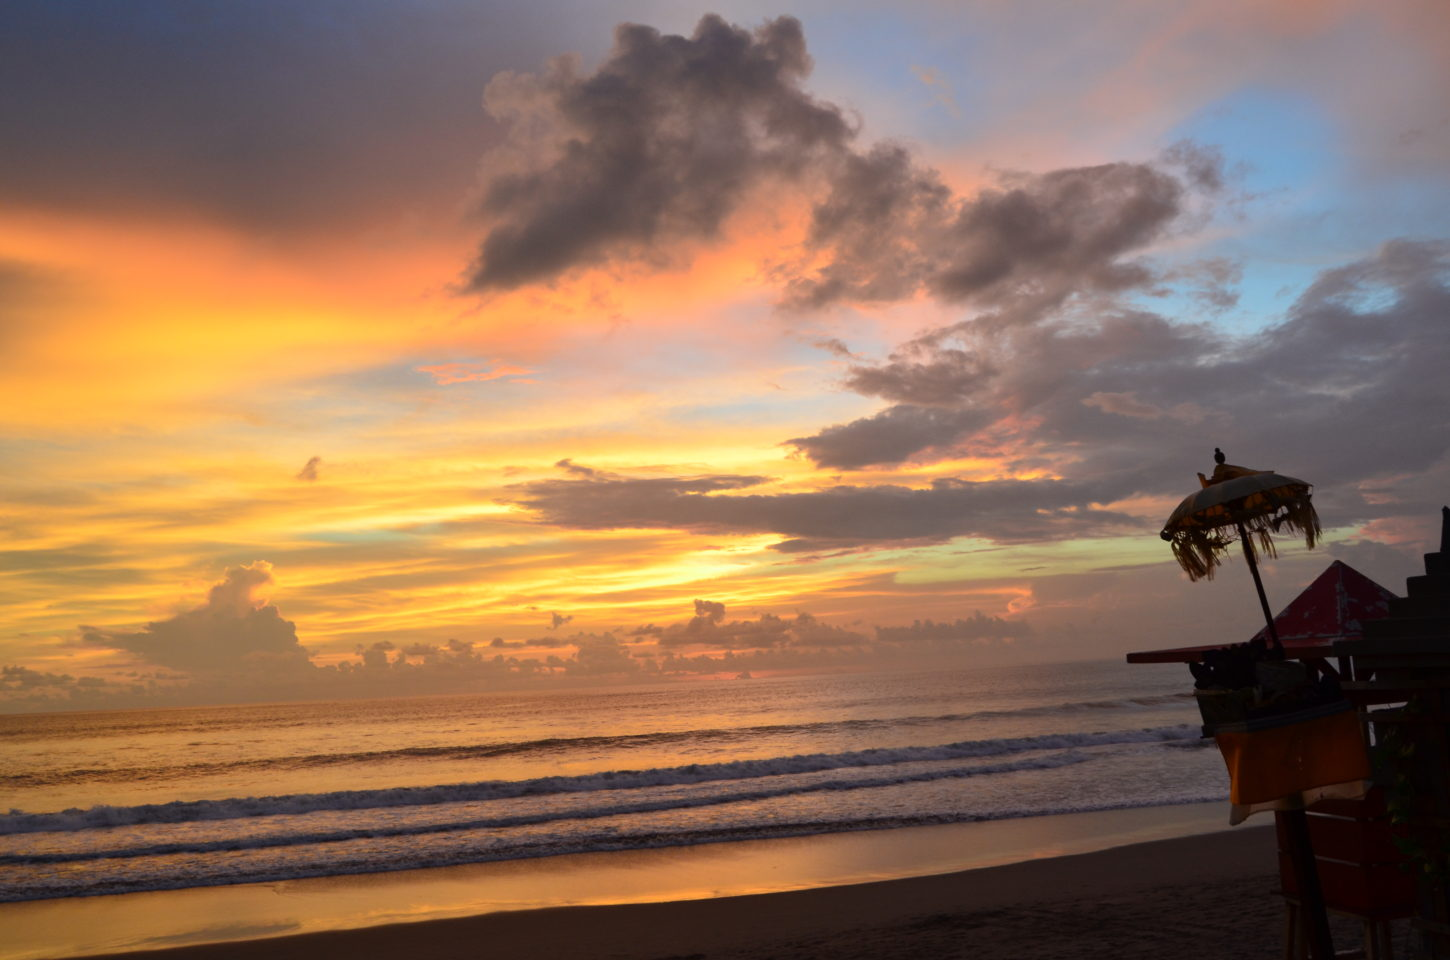 lifestyle redesign  - dsc 0341 - Bali Getaway: Where to Eat and Drink in Seminyak (Part Two)